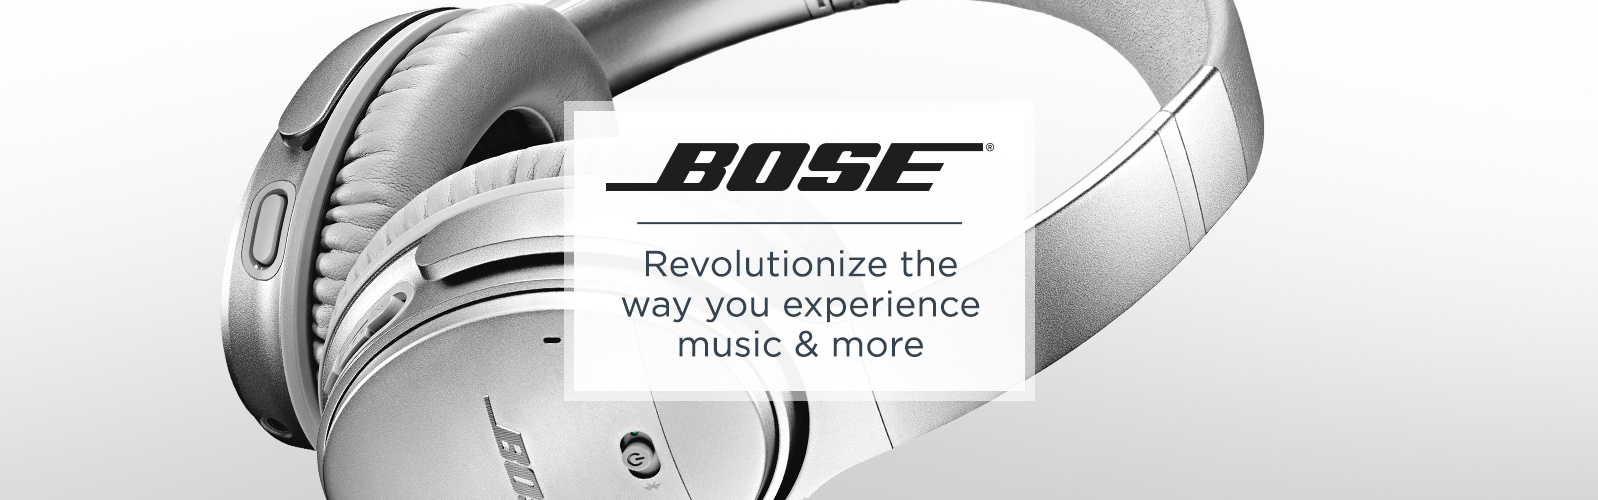 Bose. Revolutionize the way you experience music & more